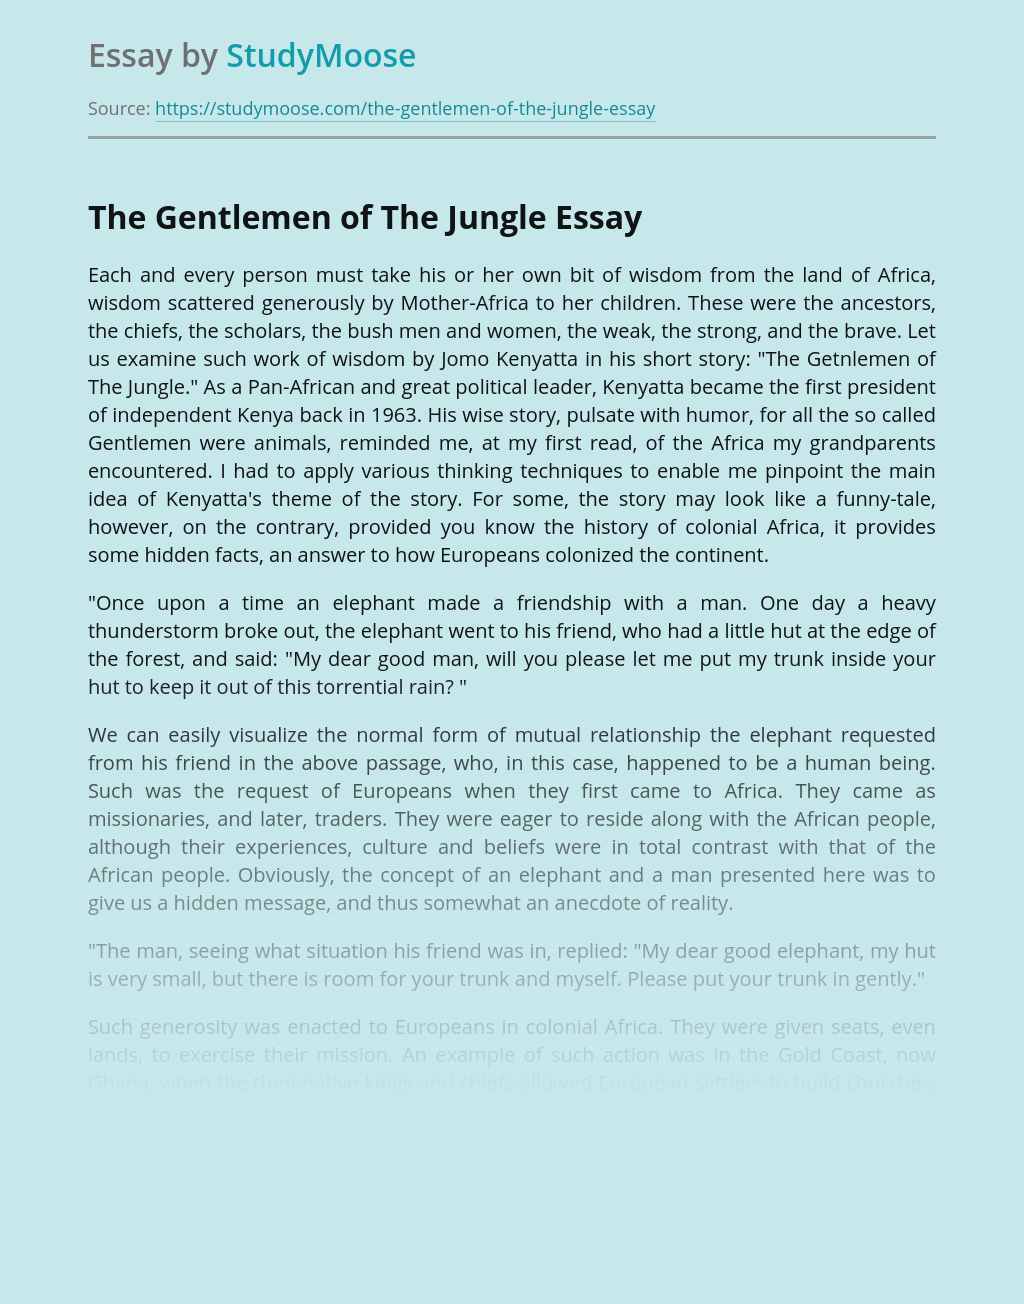 Problems Shown in The Gentlemen of The Jungle